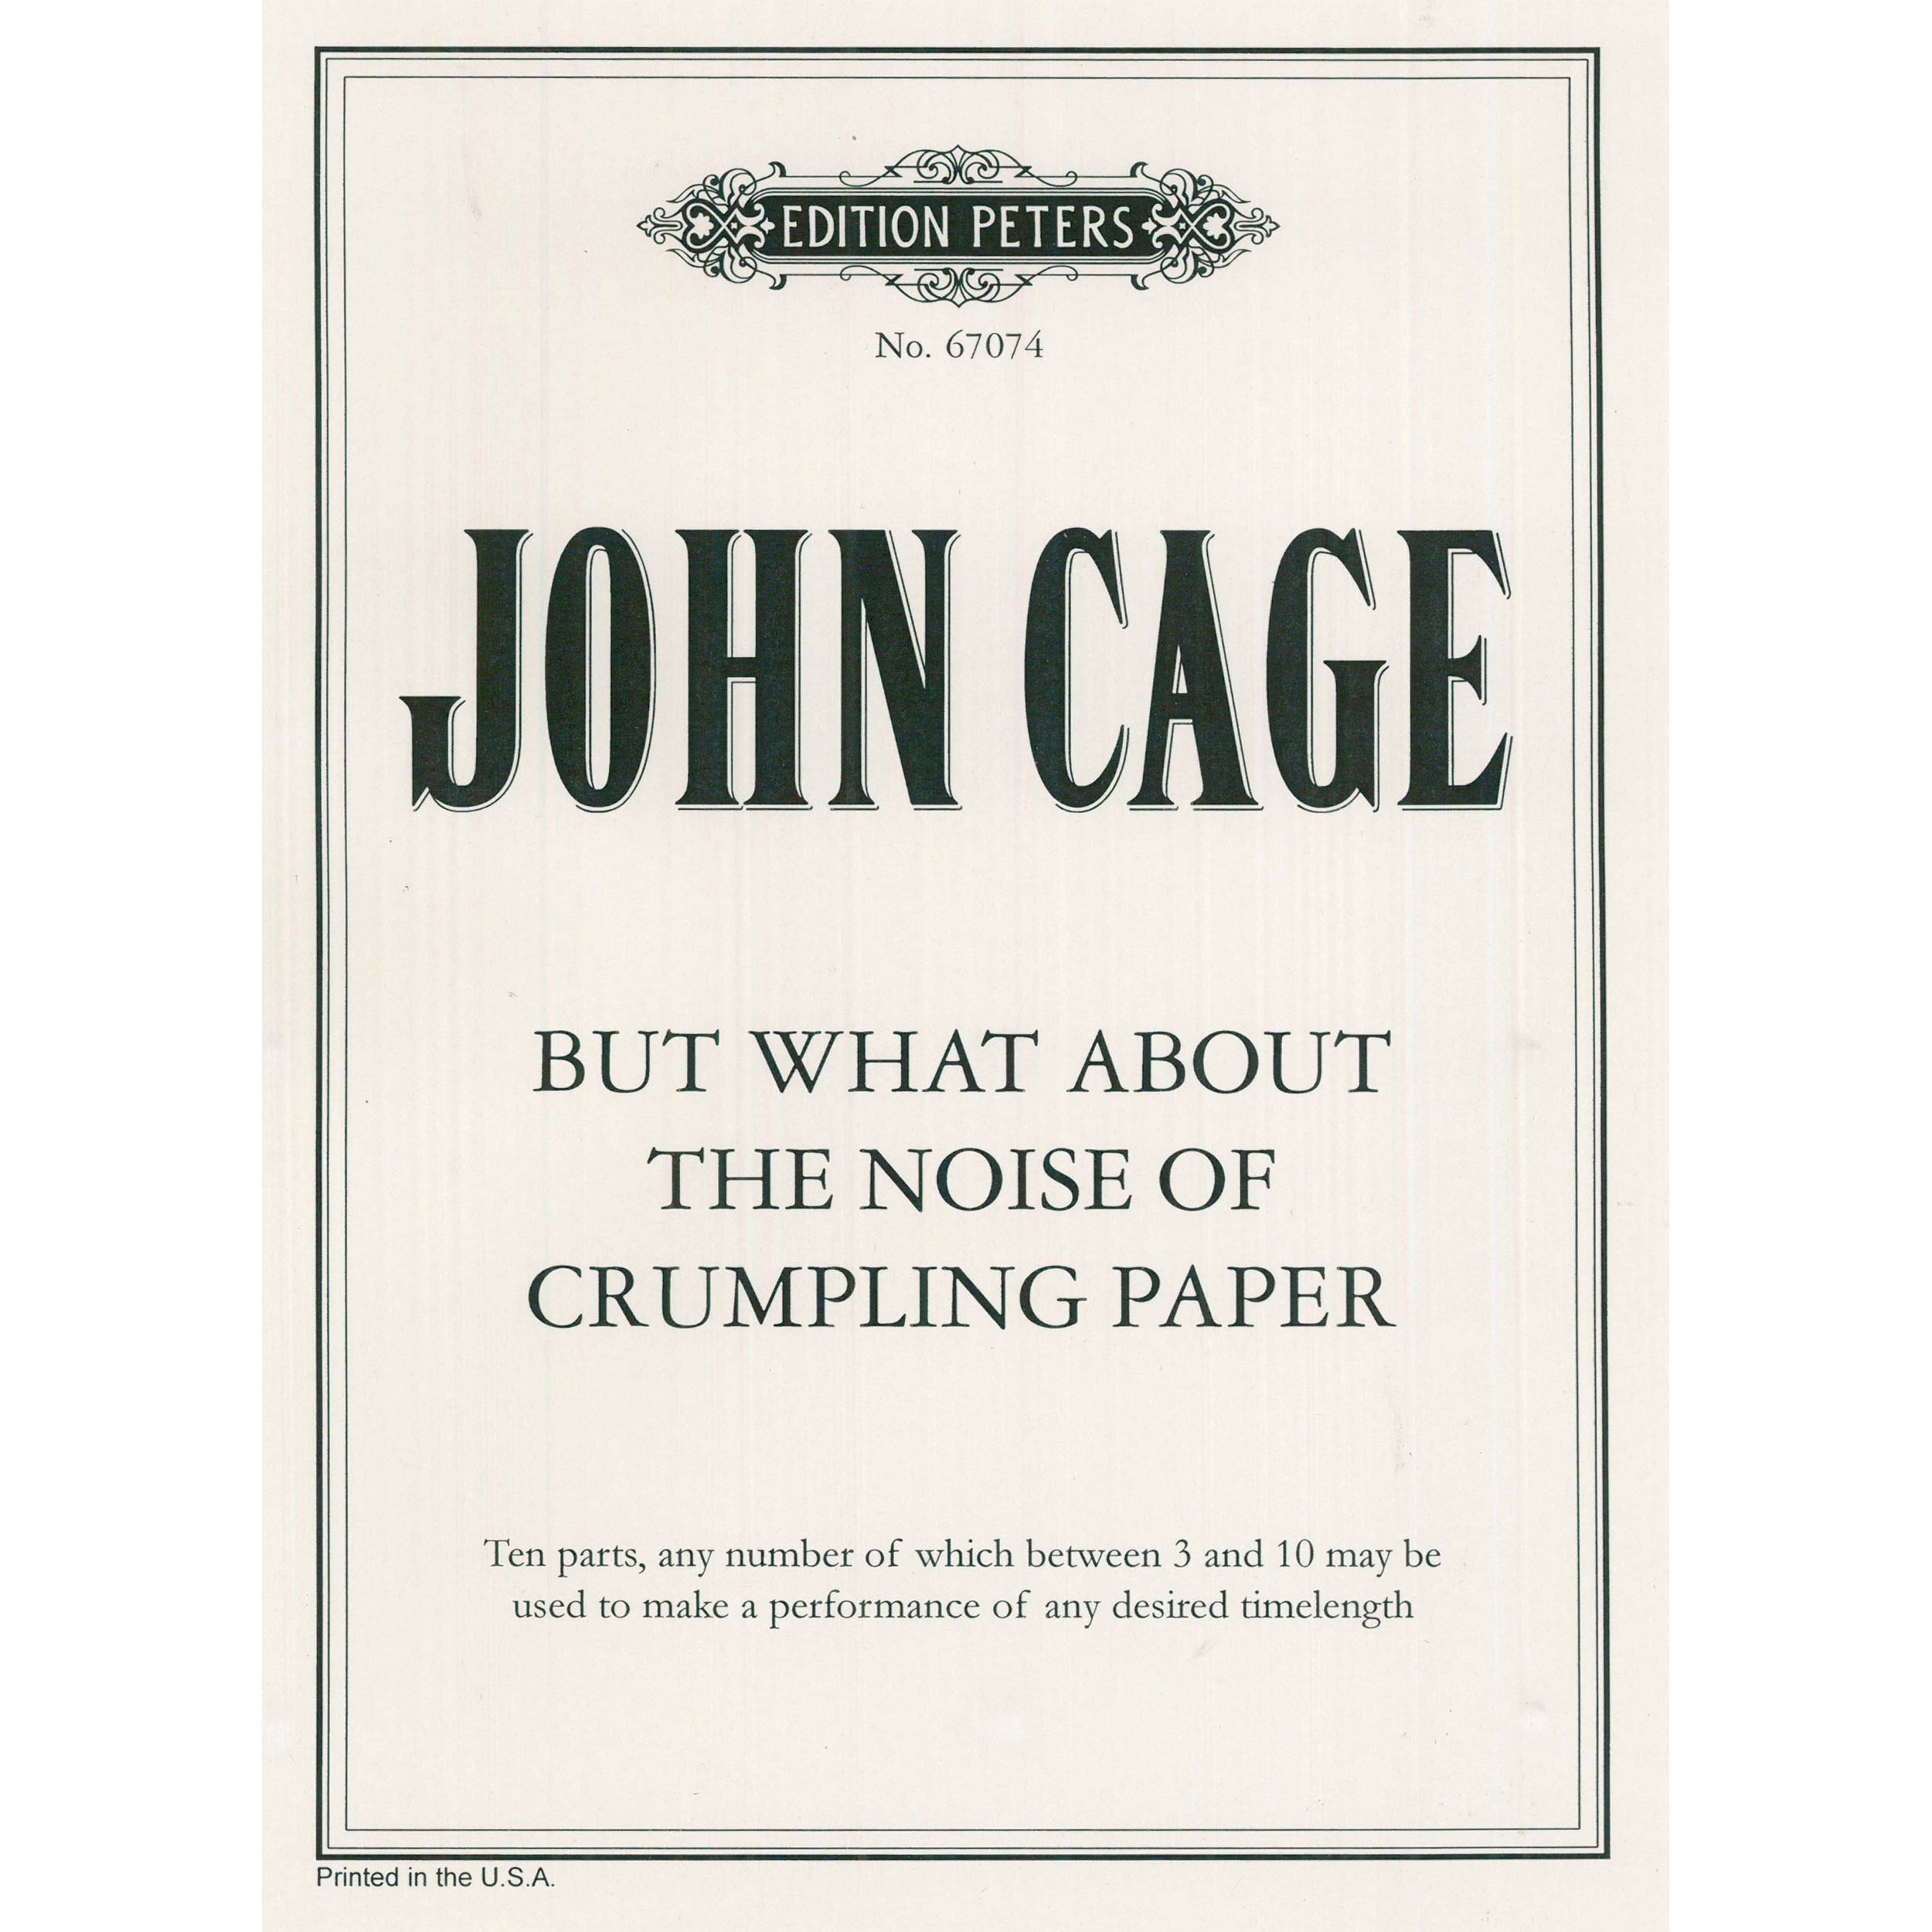 but what about... by John Cage